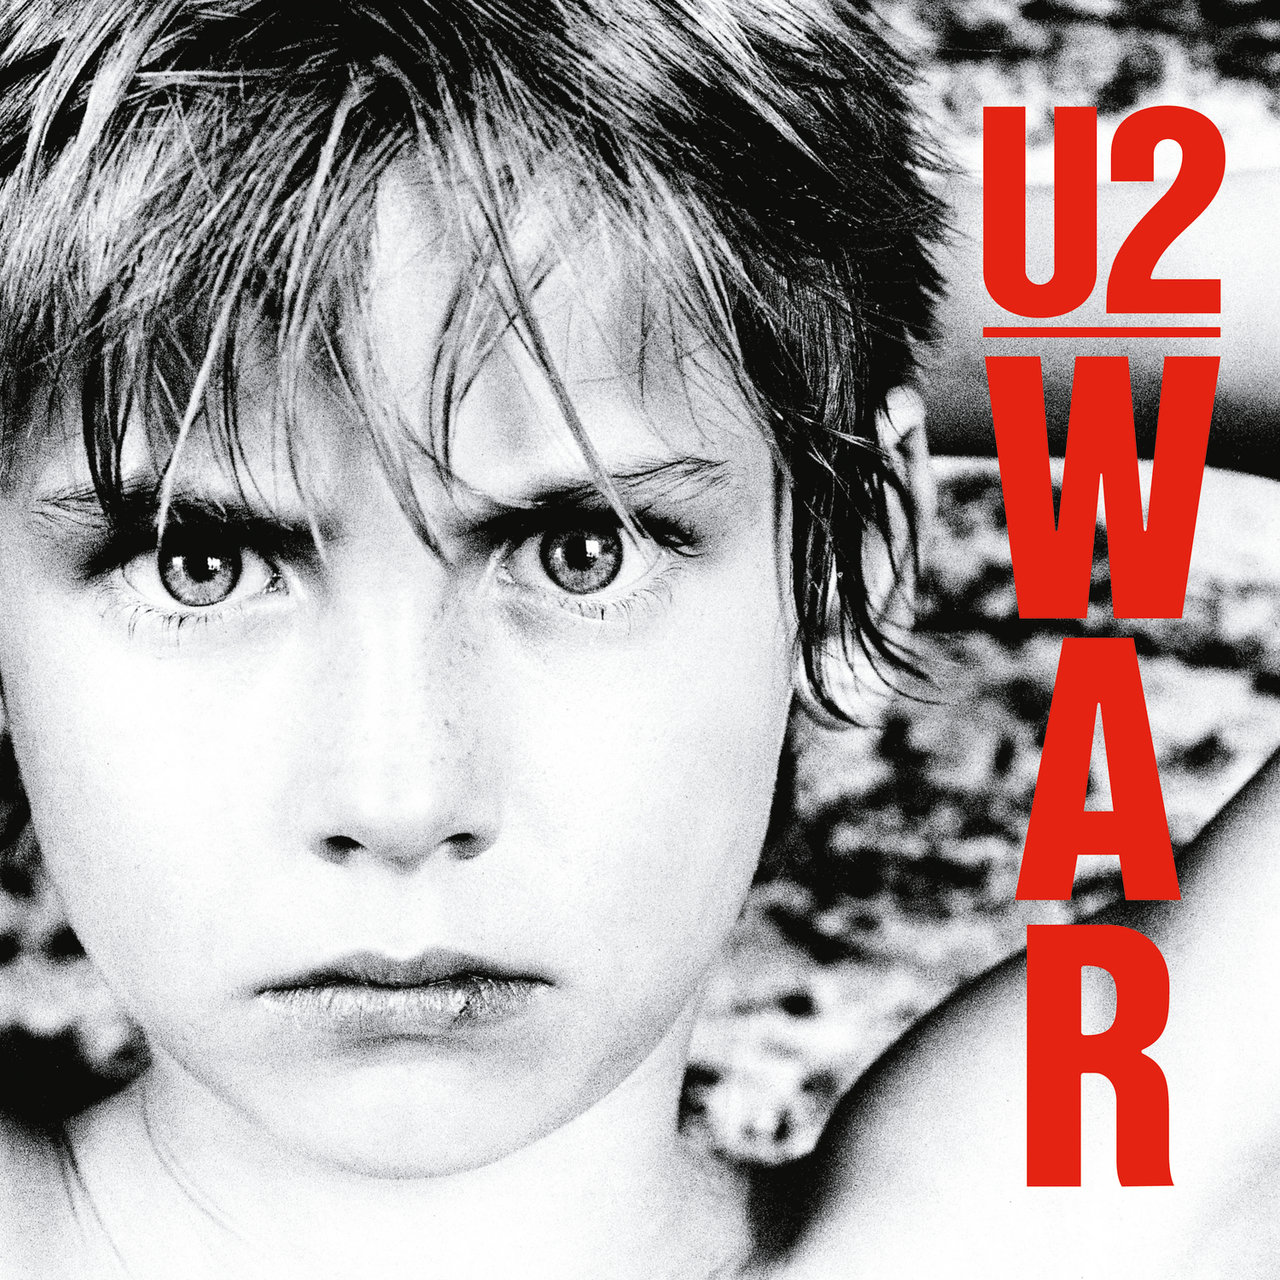 War (Remastered Deluxe Edition)